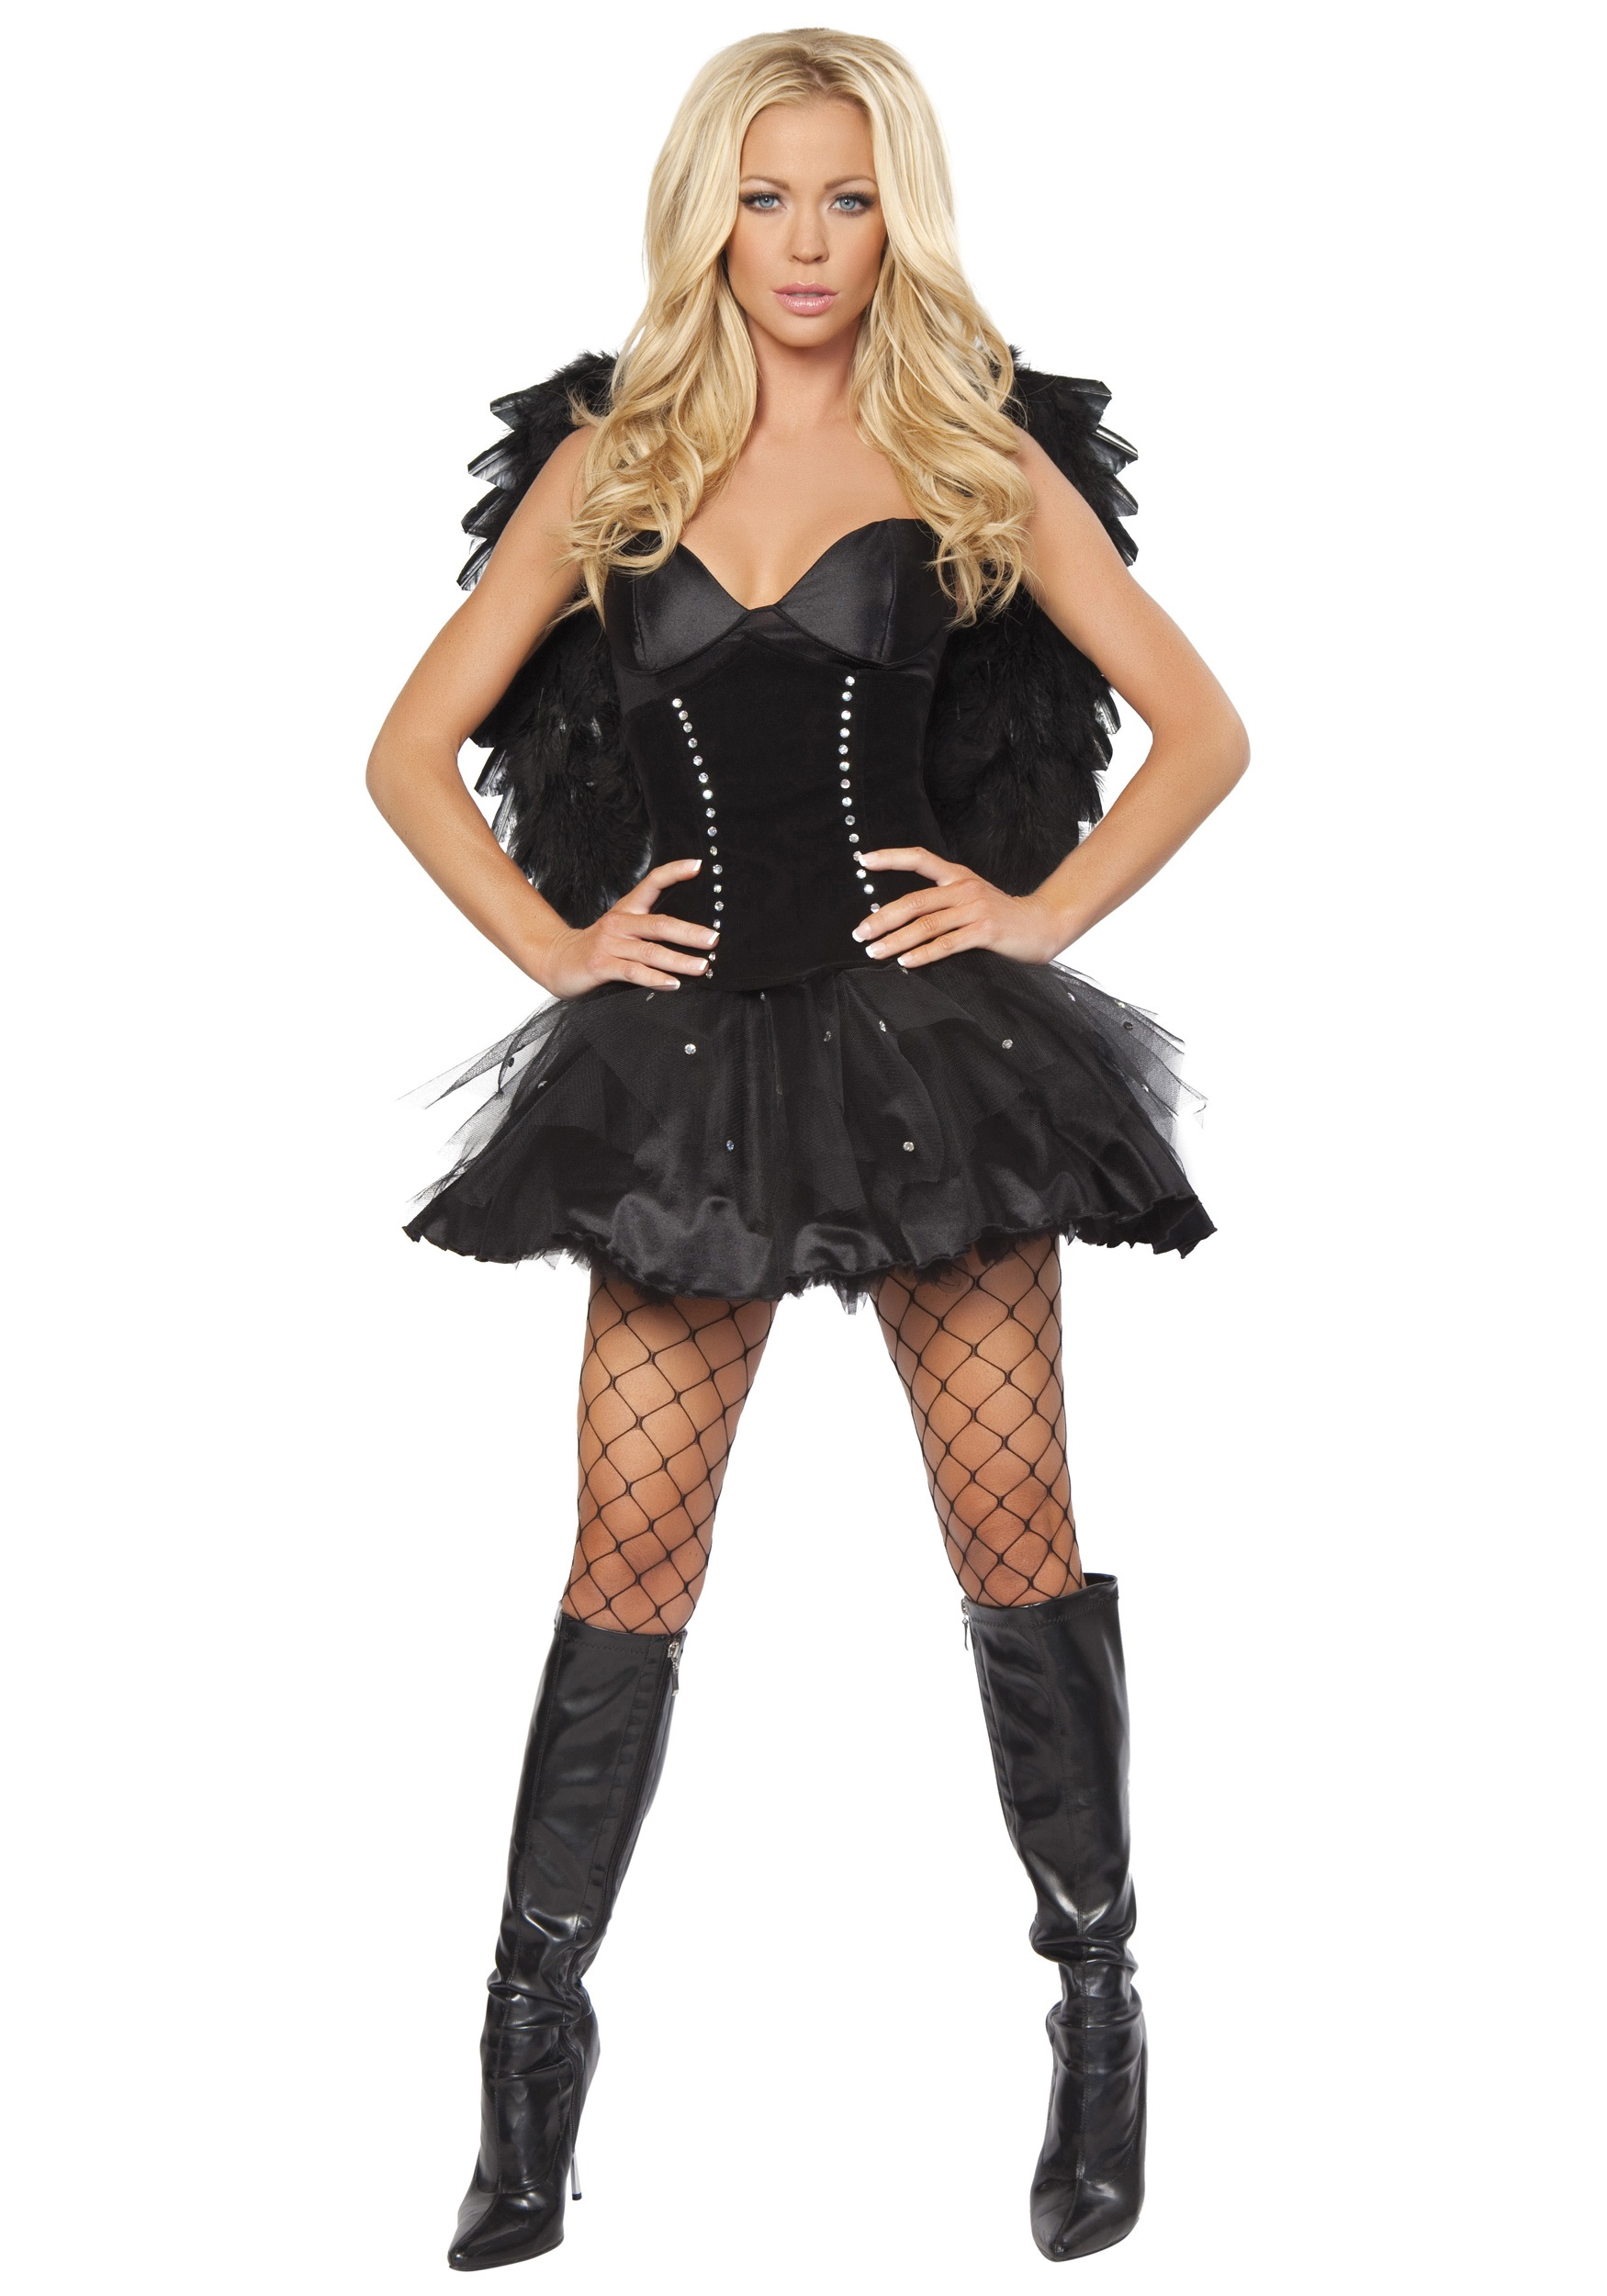 devilish dark angel costume halloween costume ideas 2016. Black Bedroom Furniture Sets. Home Design Ideas